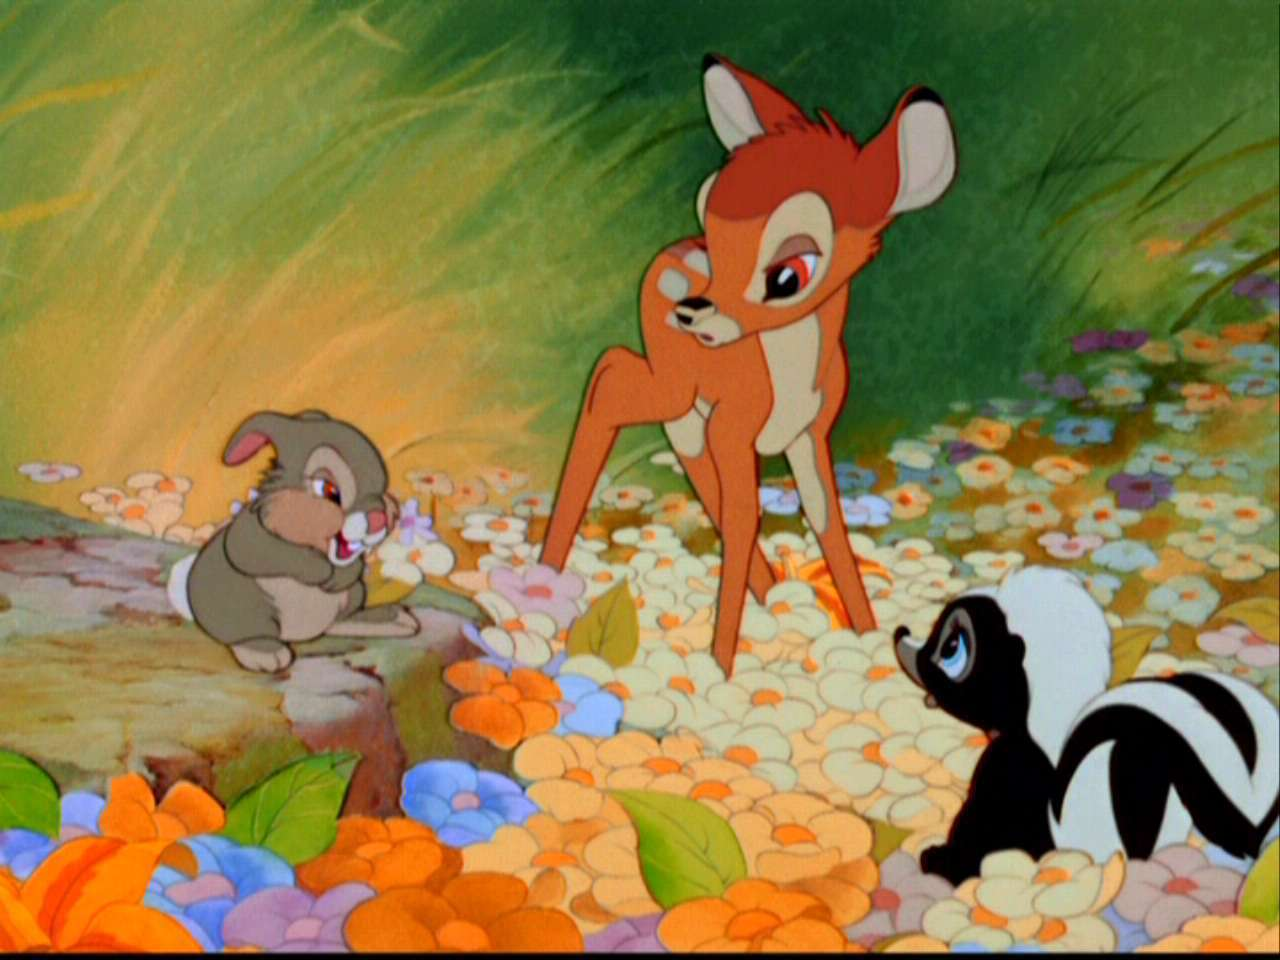 bambi images bambi hd wallpaper and background photos